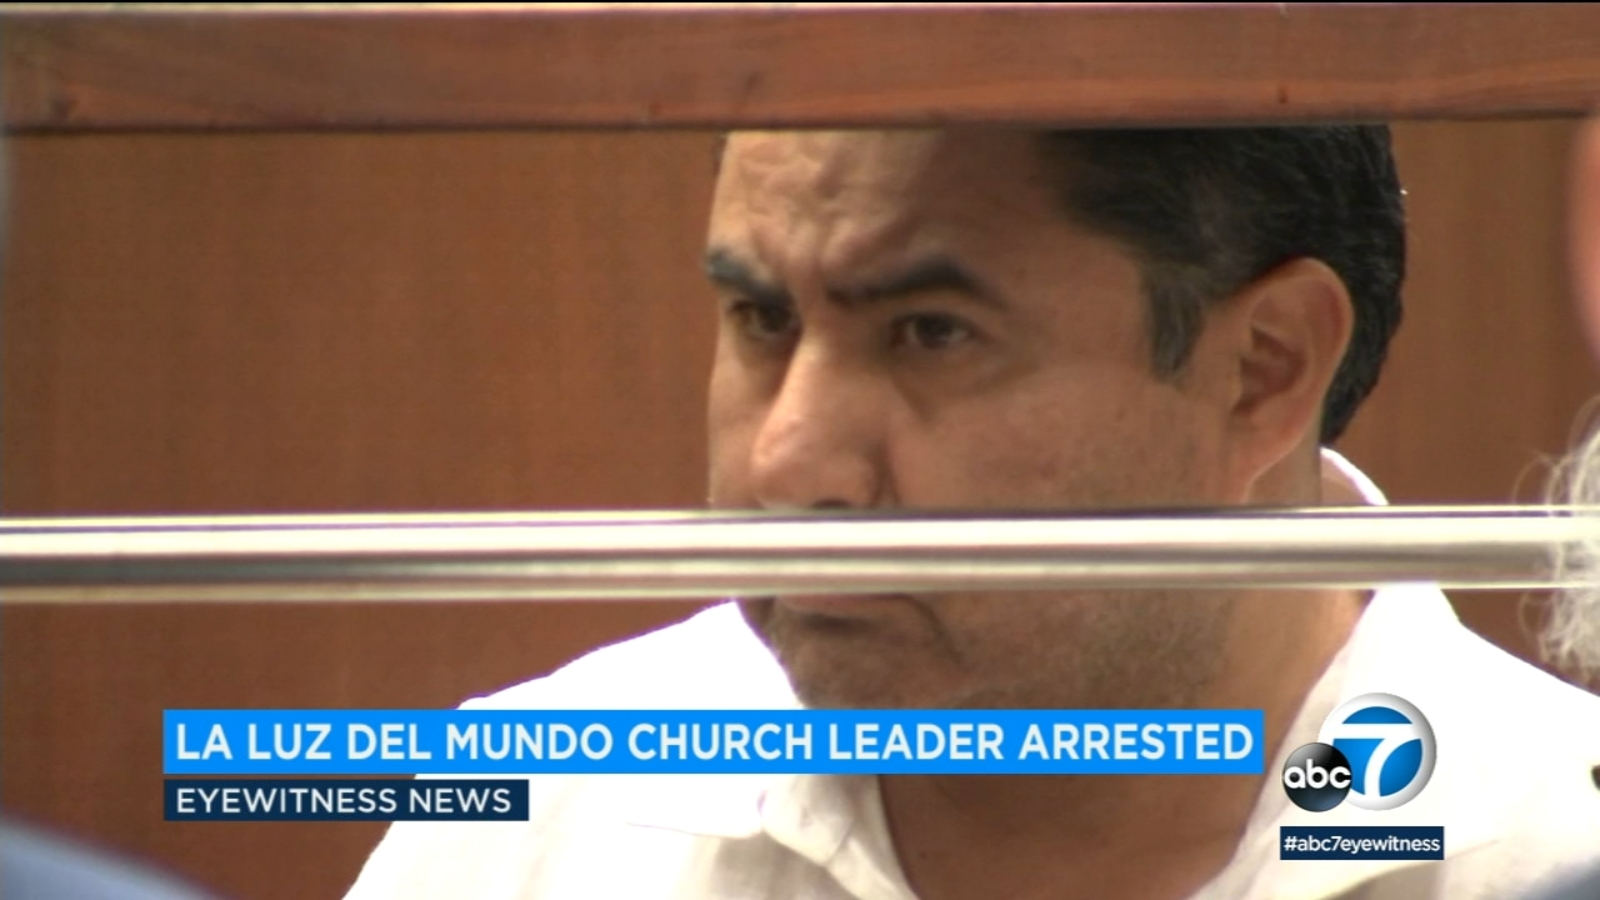 Bail set at $50 million for La Luz del Mundo church leader facing sex charges